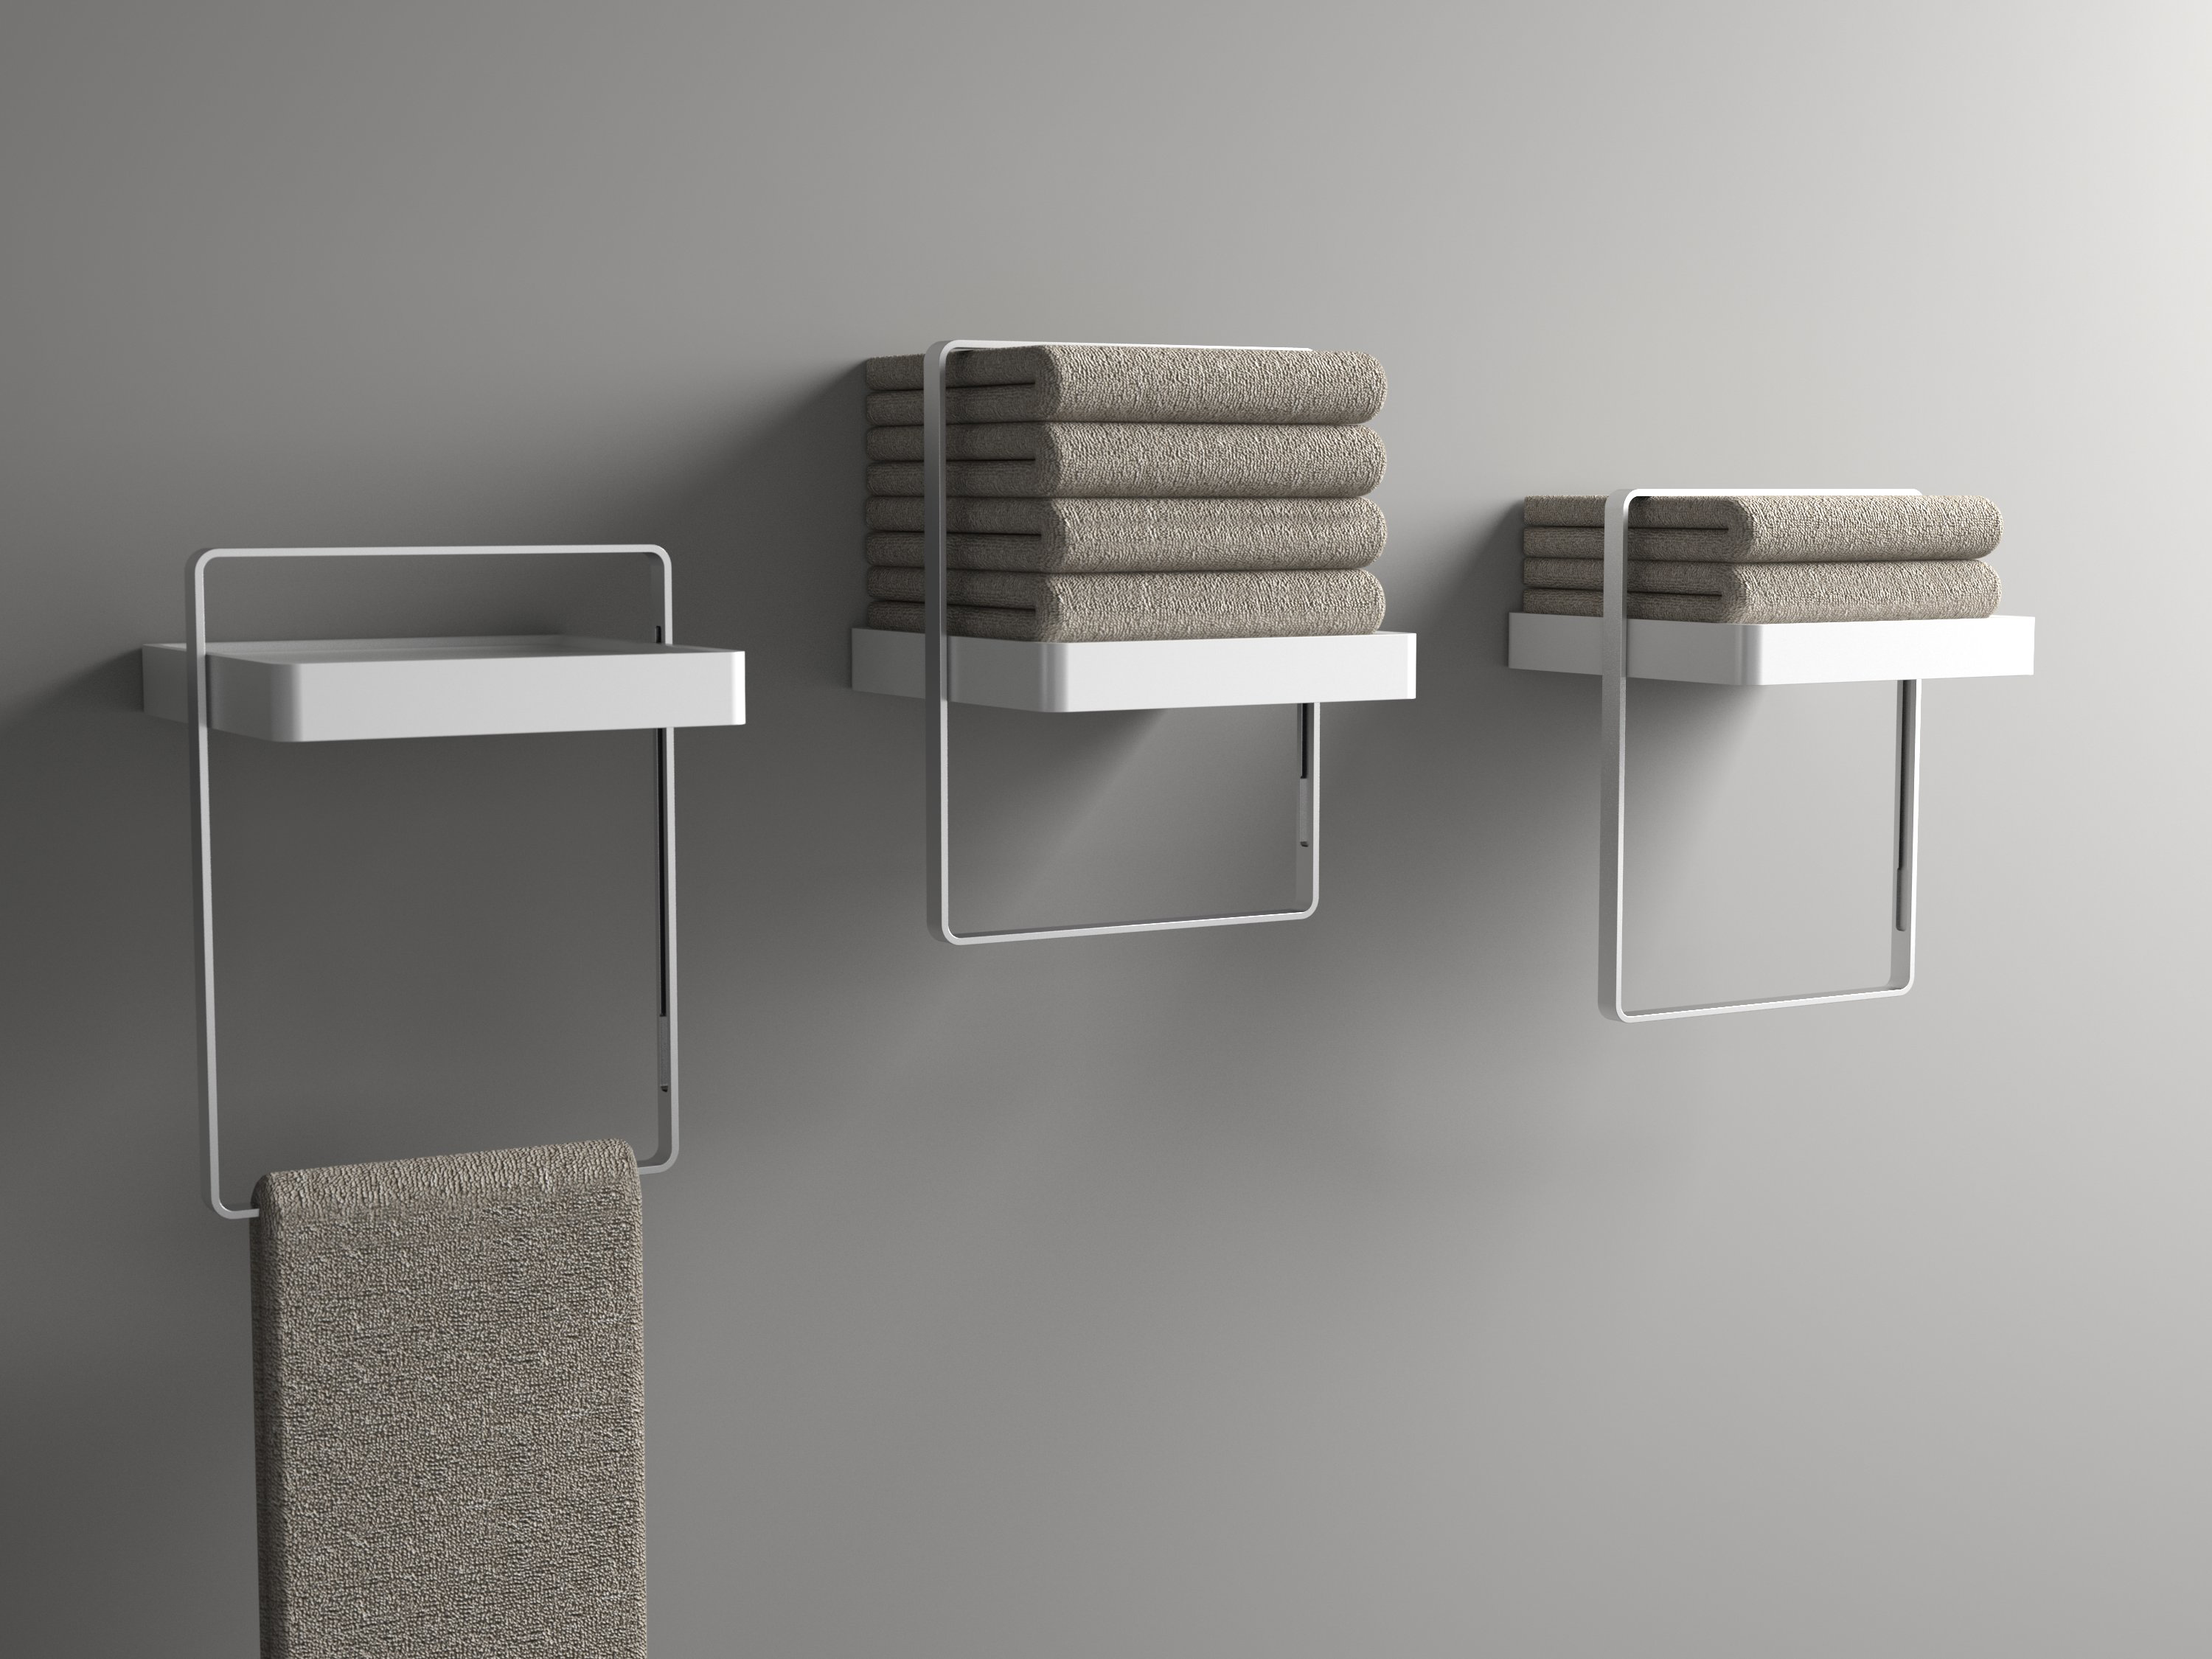 toilet towel and the shelf shelves rack storage wall white decor in city a paper cottage antique